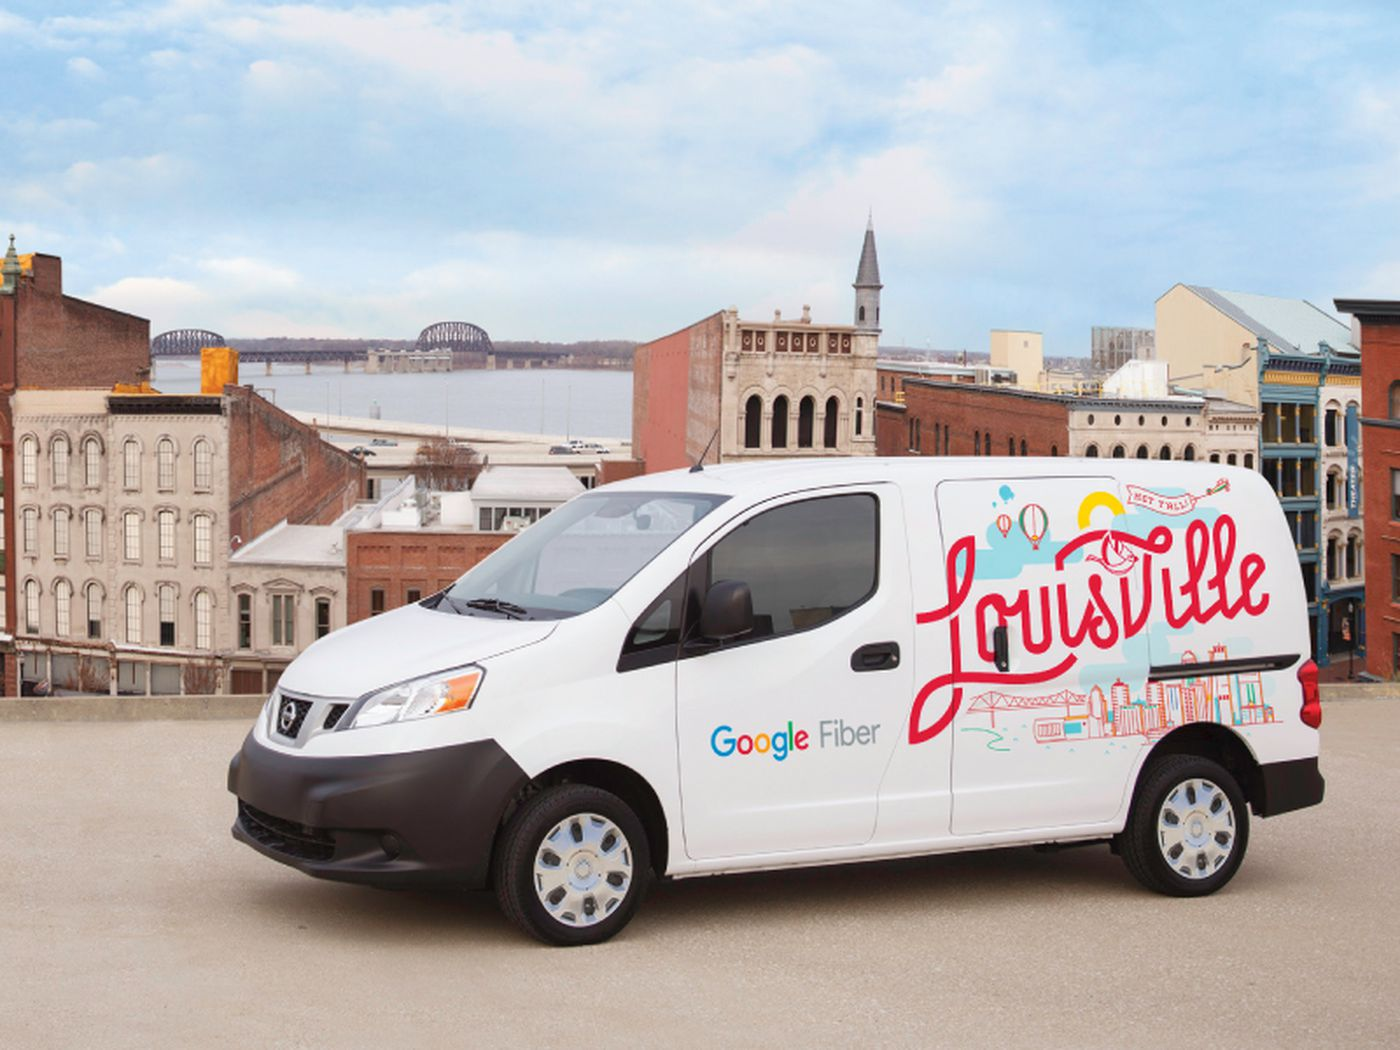 Google Fiber is leaving Louisville in humiliating setback